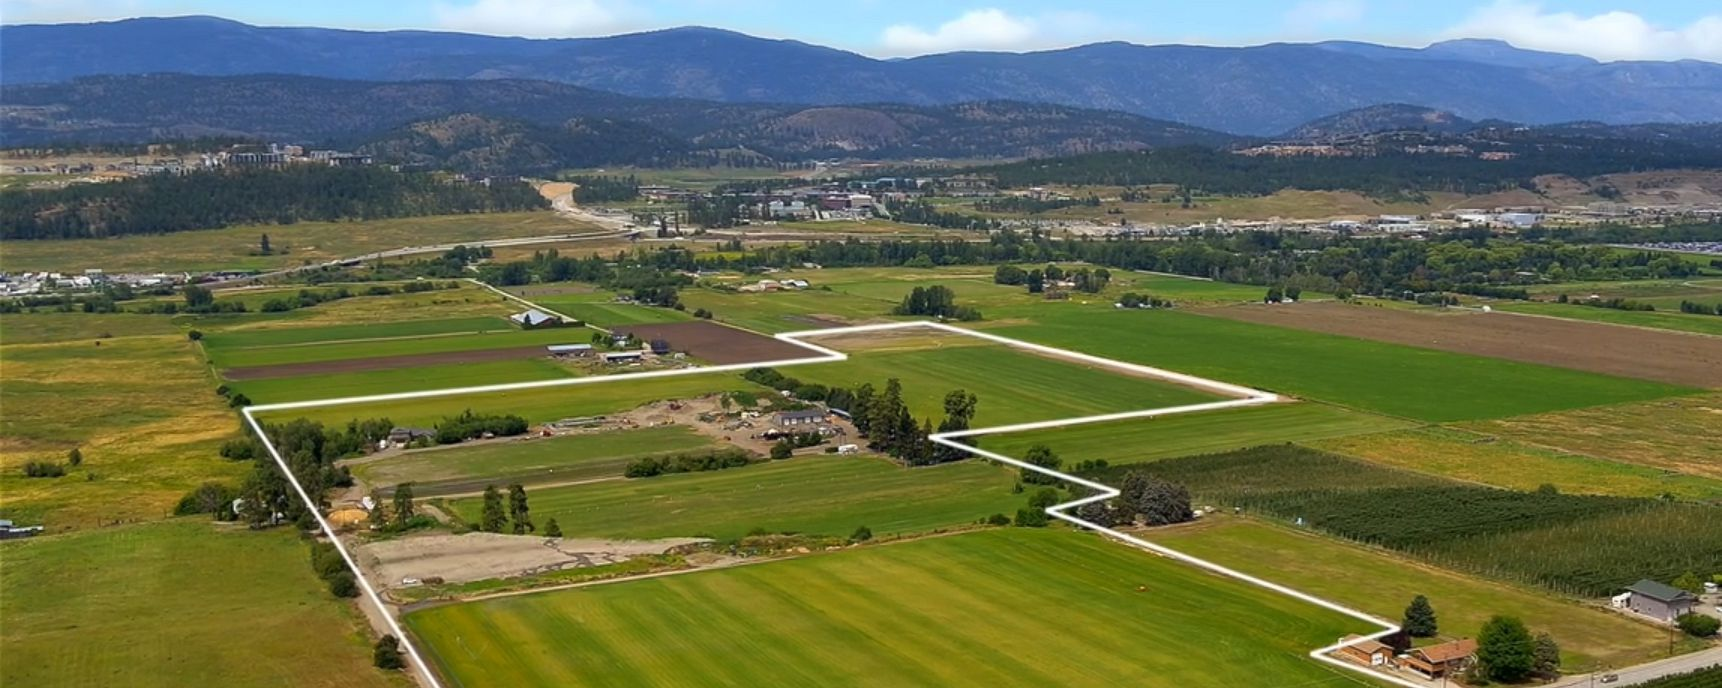 "BC Tree Fruits Cooperative Announces Purchase of 85 Acres in Kelowna as Part of ""One Roof"" Plan"